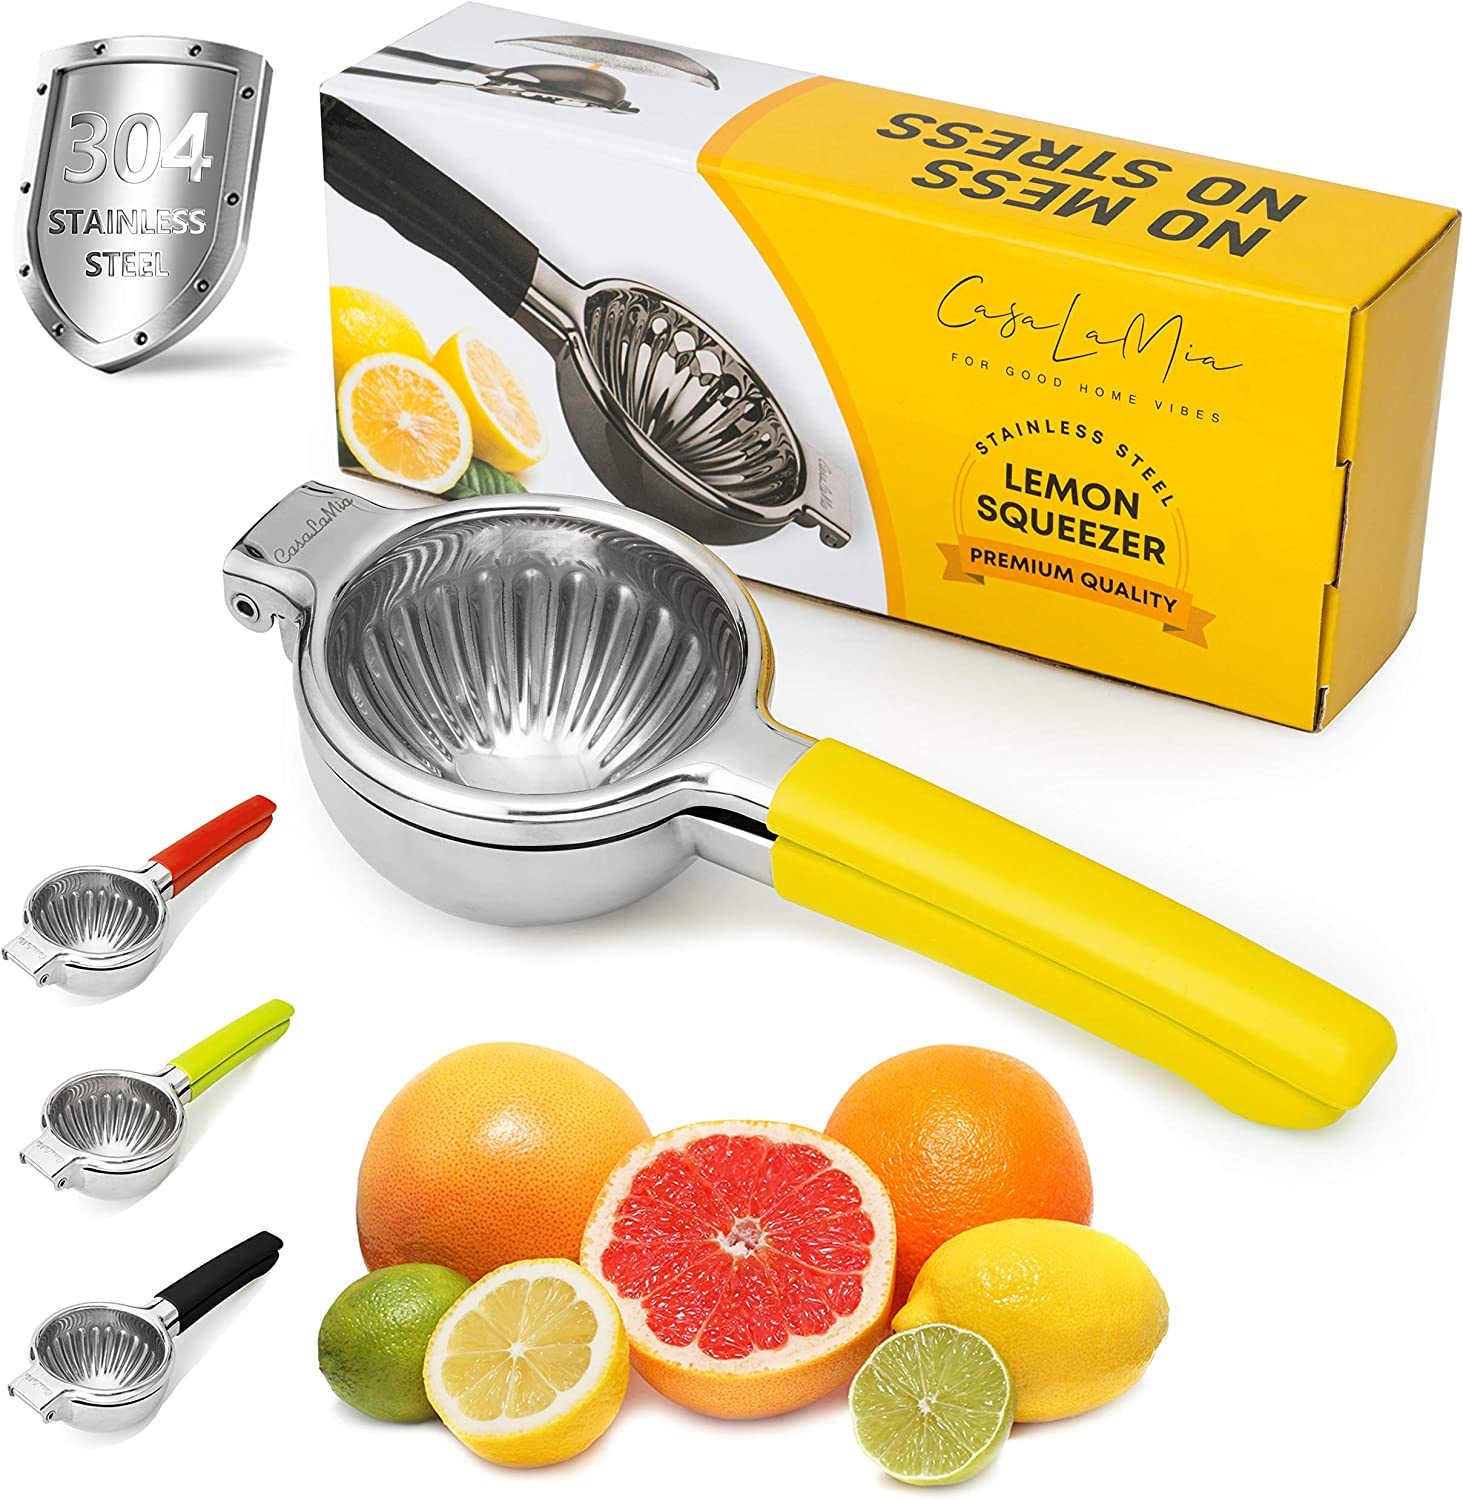 CasaLaMia Lemon Squeezer Citrus Juicer - Manual Juicer Hand Press and Lime Squeezer Stainless Steel for Extracting Lemon Limes Tangerine, and Pomegranate Juice Easy